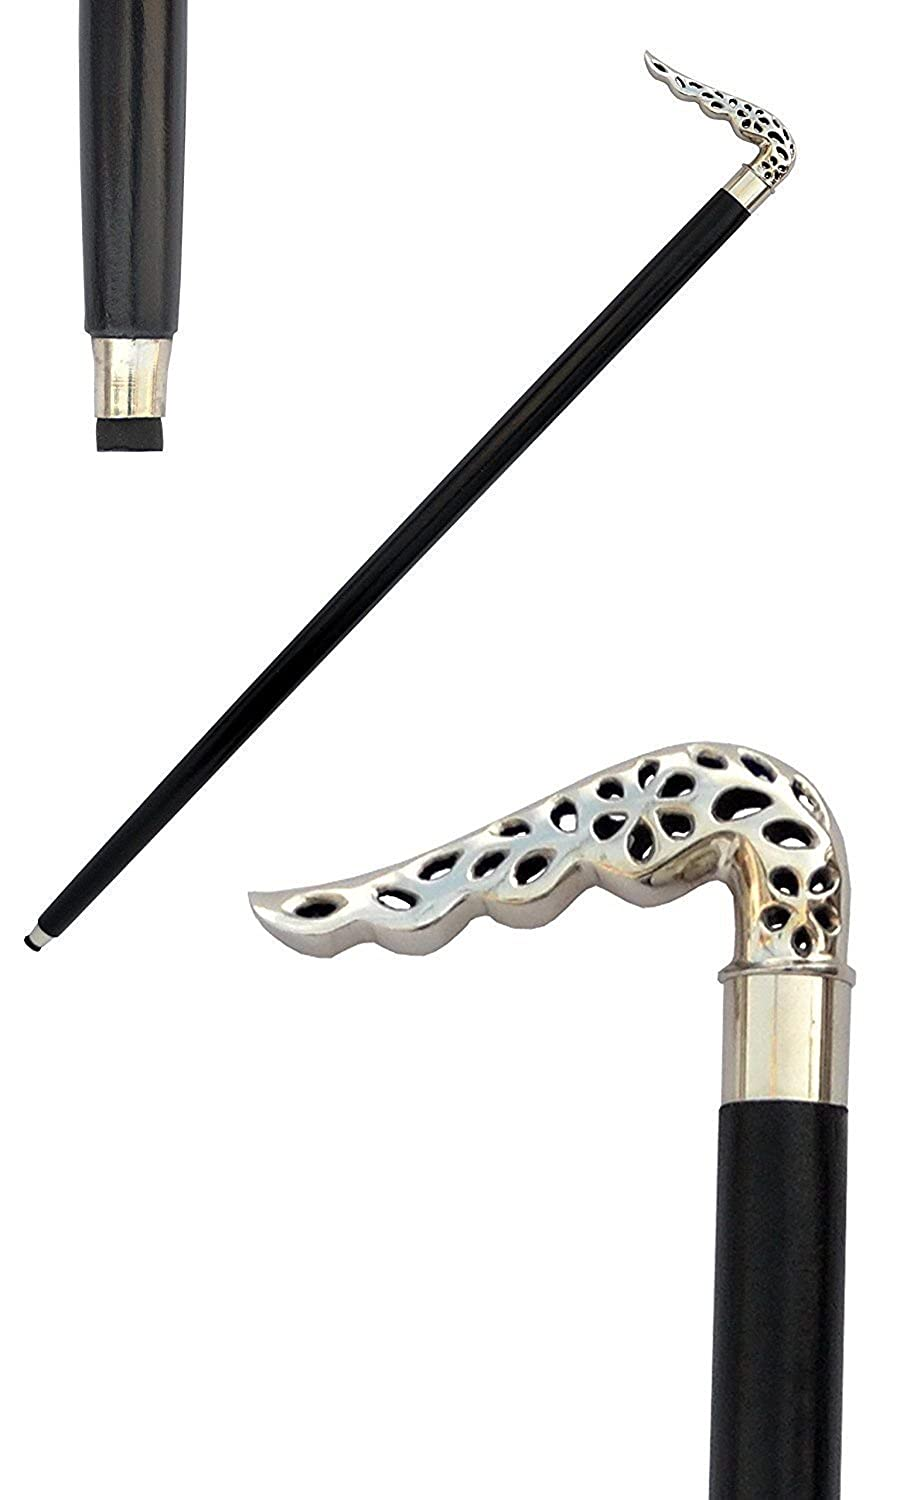 REPLICA MUSEUM Vintage Antique Style Silver Brass, Black Wood Victorian Walking Stick Cane